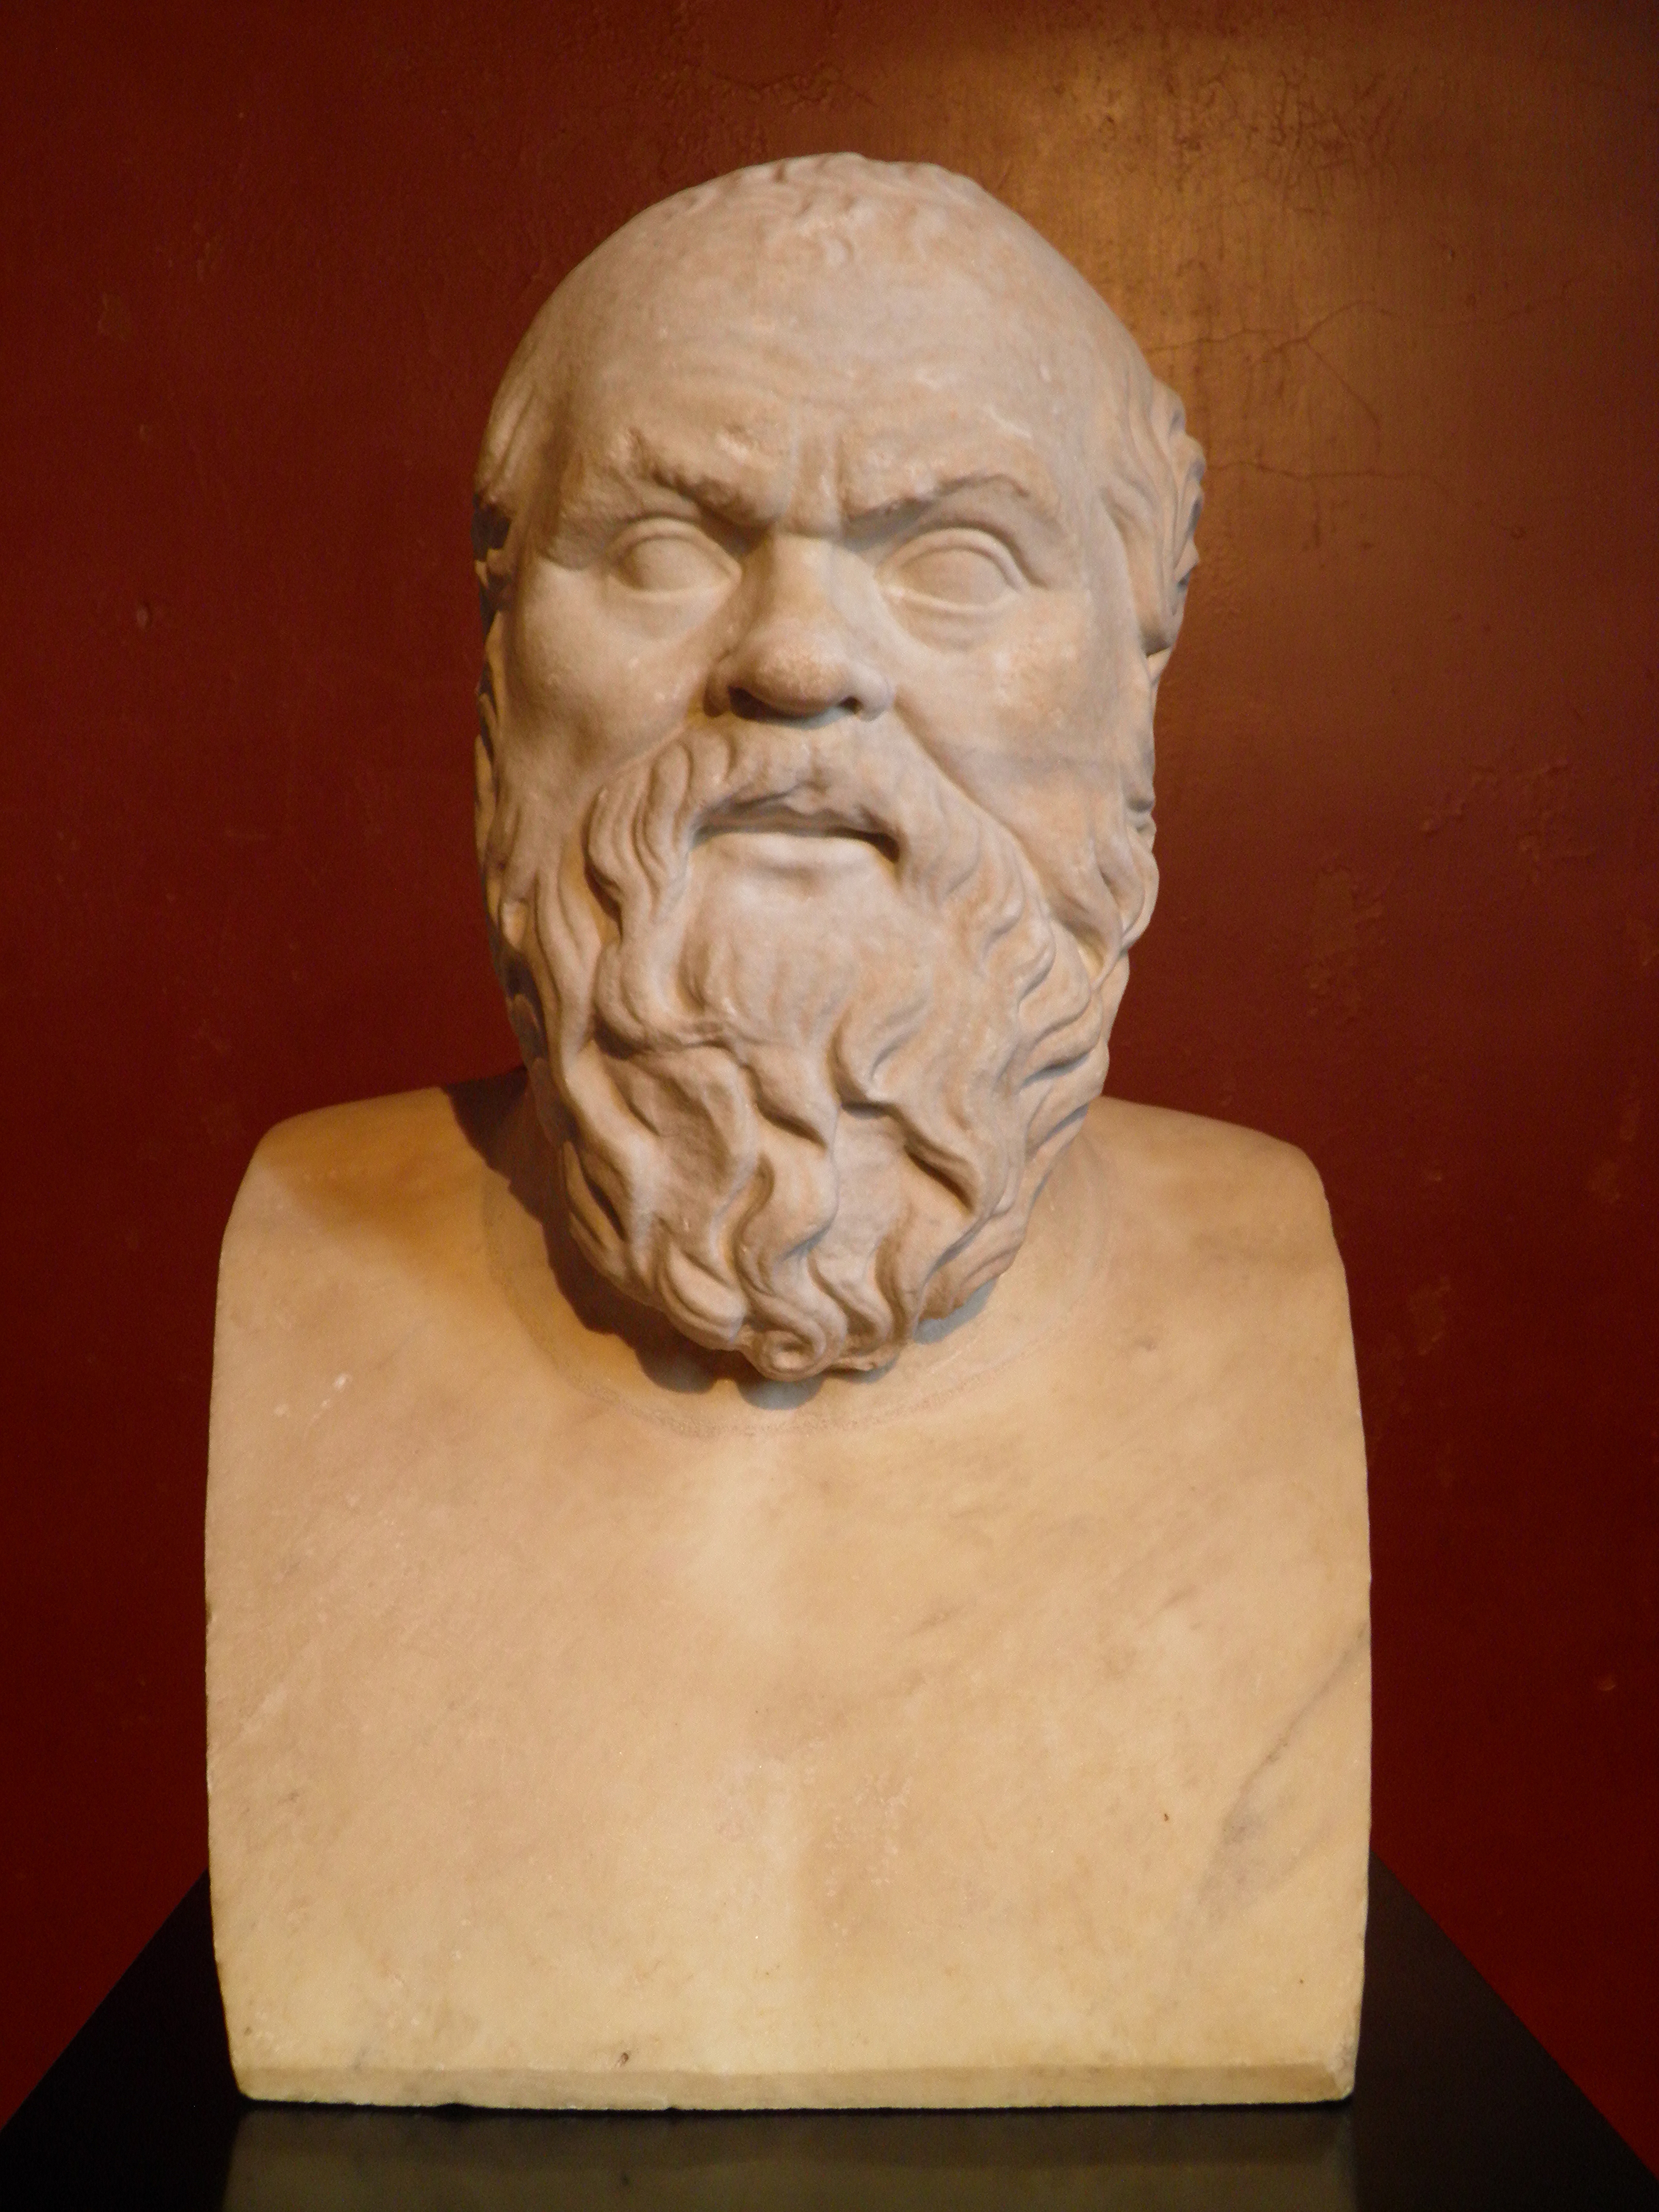 an introduction to the philosopher socrates Since its publication in 1994, richard mckirahan's _philosophy before socrates_  has become the standard sourcebook in presocratic philosophy it provides a.